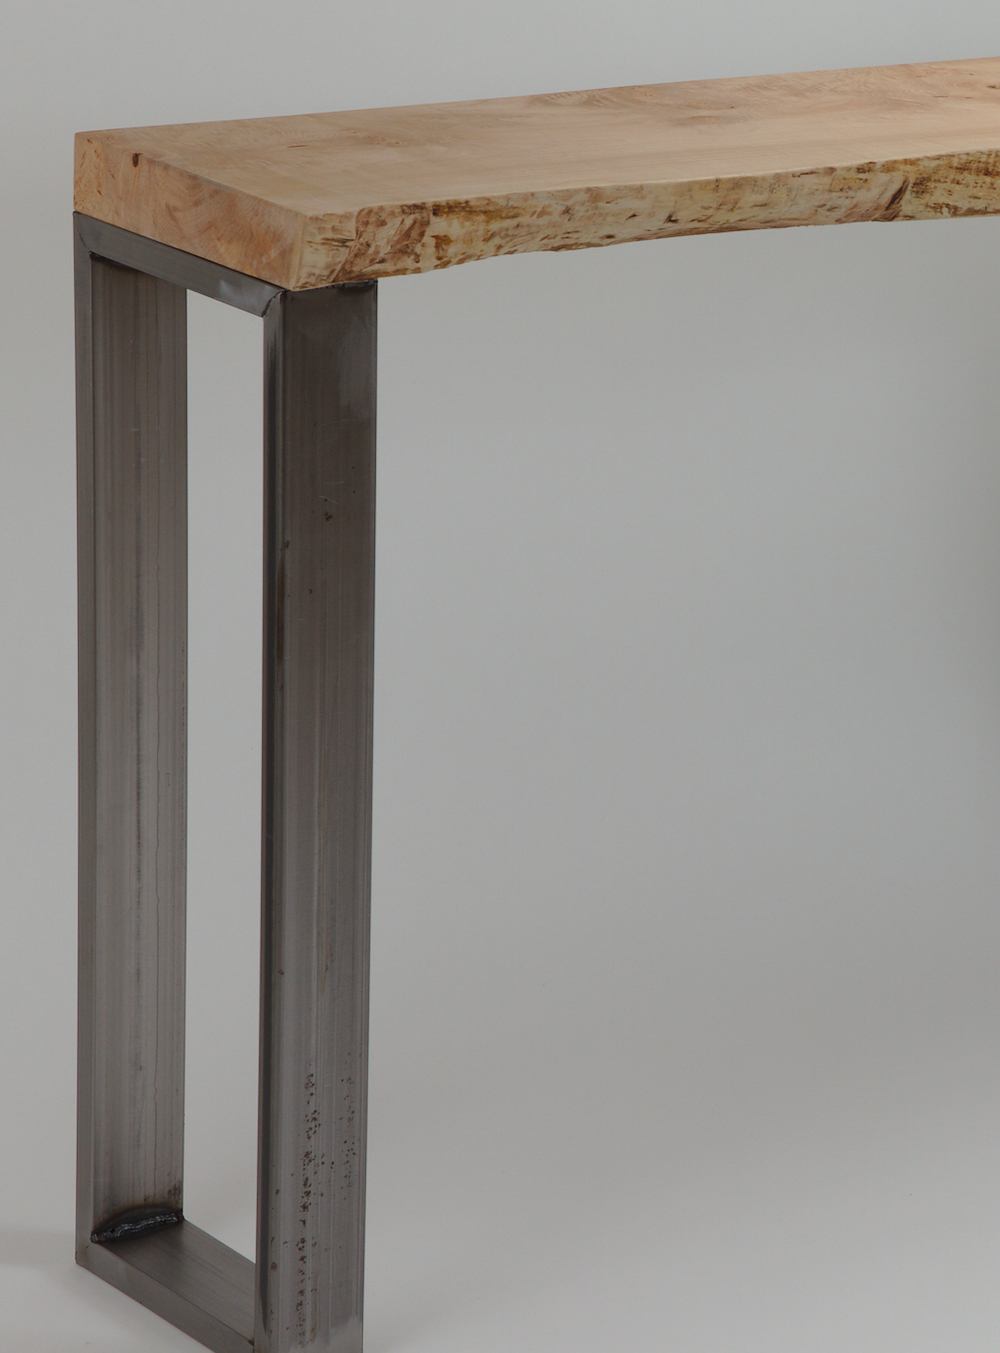 Live edge slab steel frame entry table console solid wood living room custom table